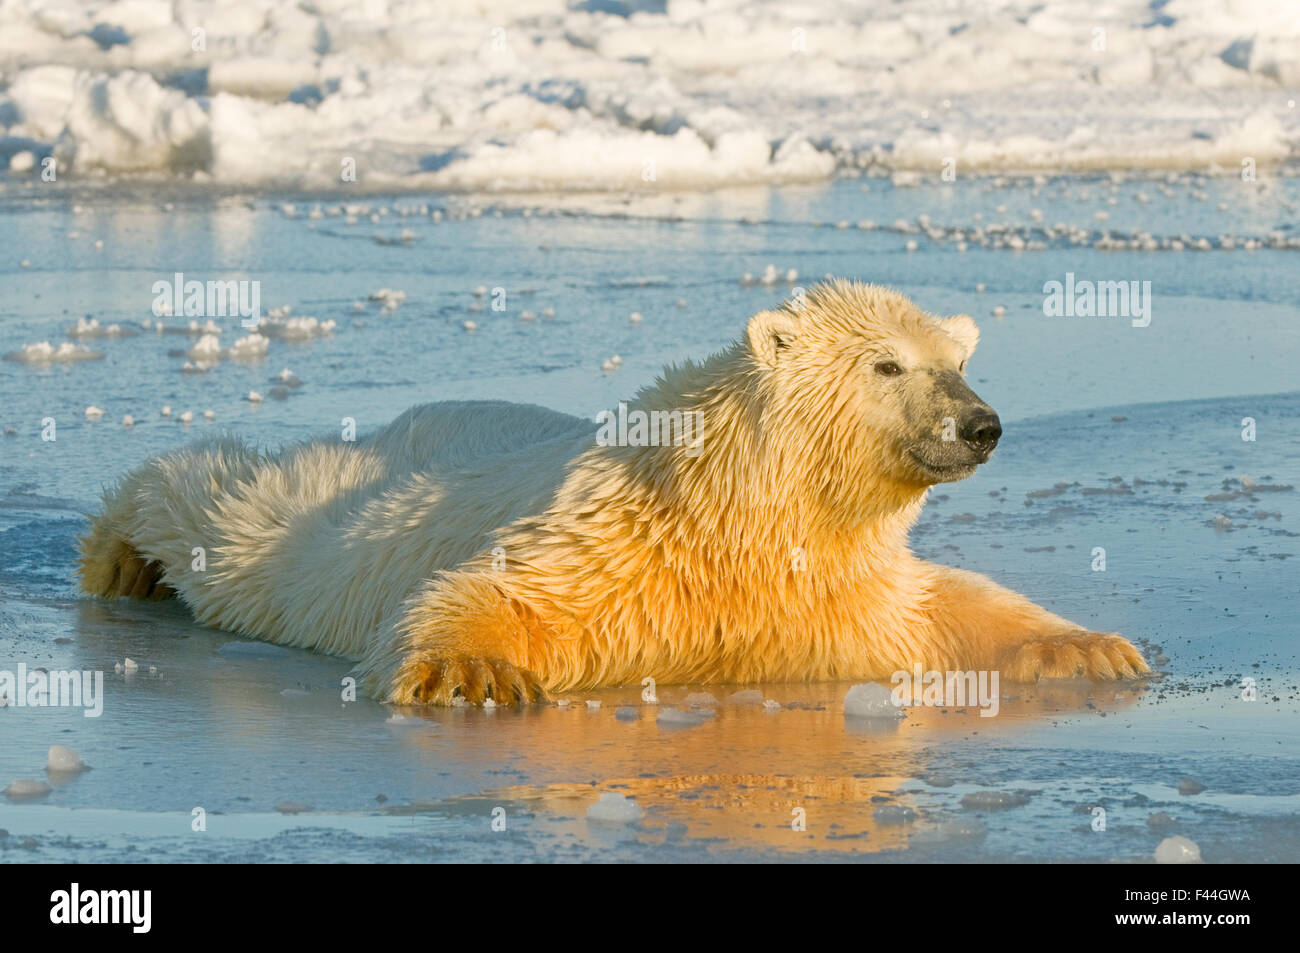 Polar bear (Ursus maritimus) juvenile spreading body weight over thin newly forming pack ice, trying not to break - Stock Image